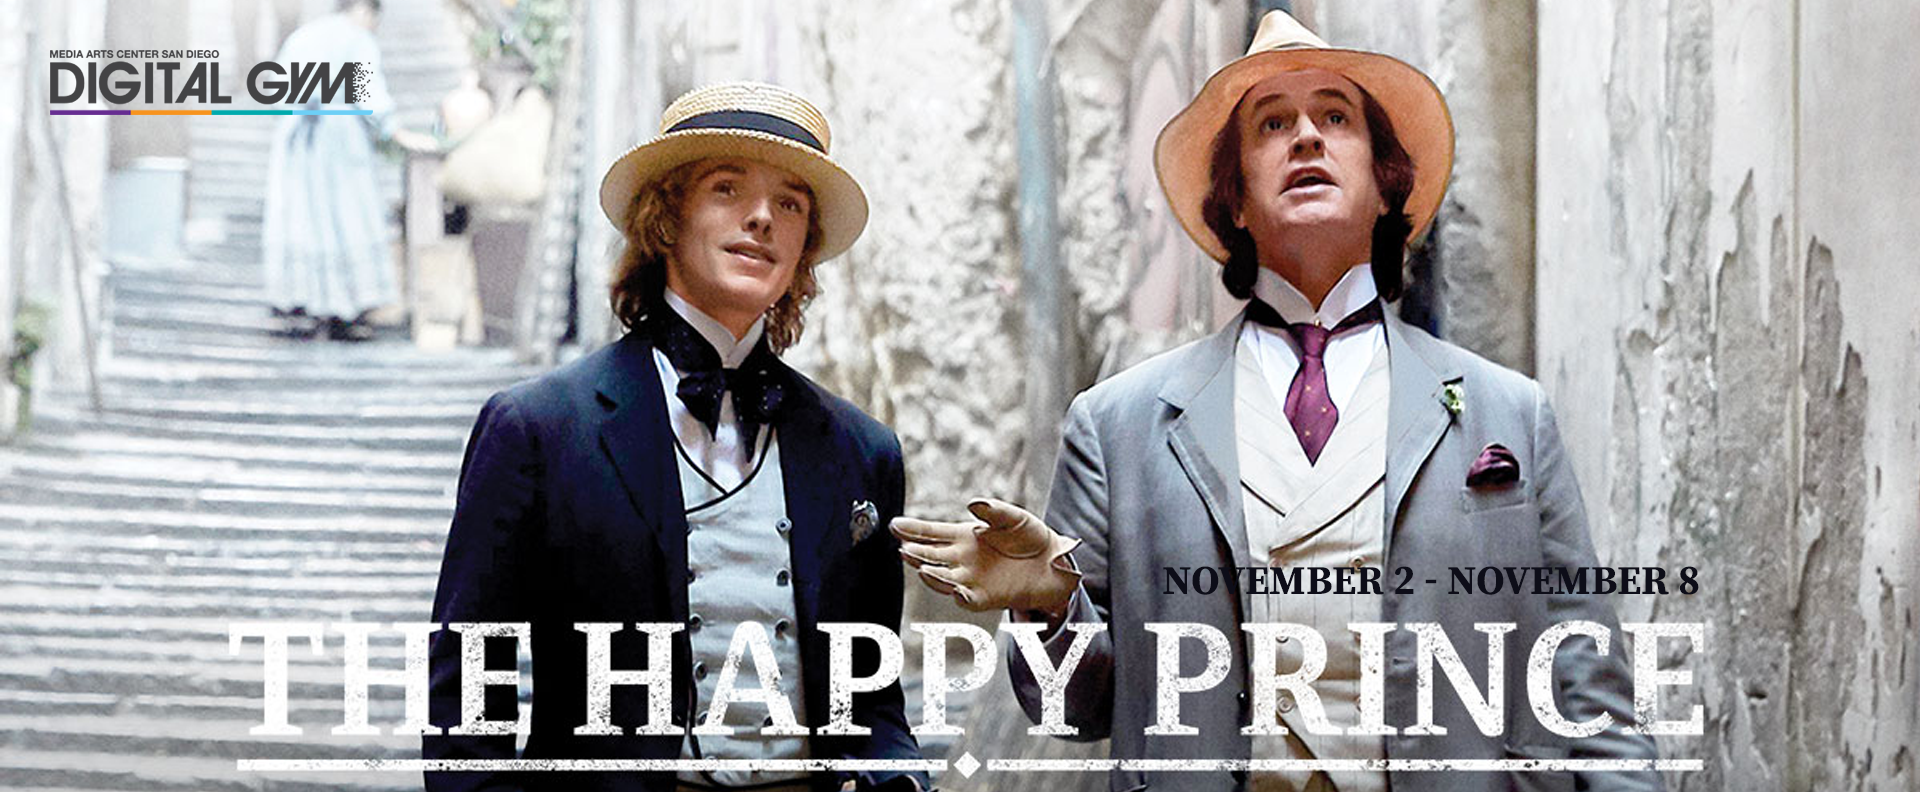 Last Chance Indies: The Happy Prince  (November 2 – November 8)